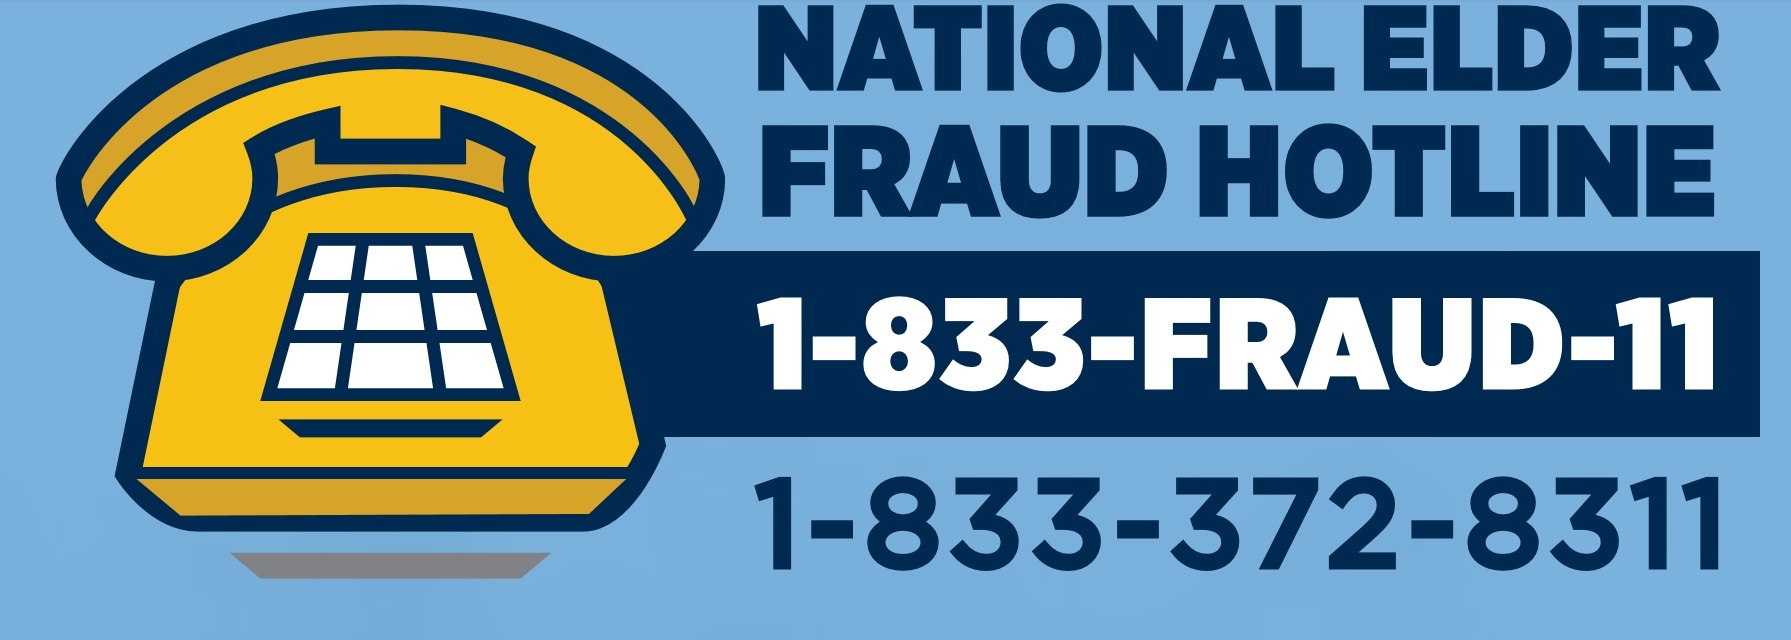 National Elder Fraud Hotline